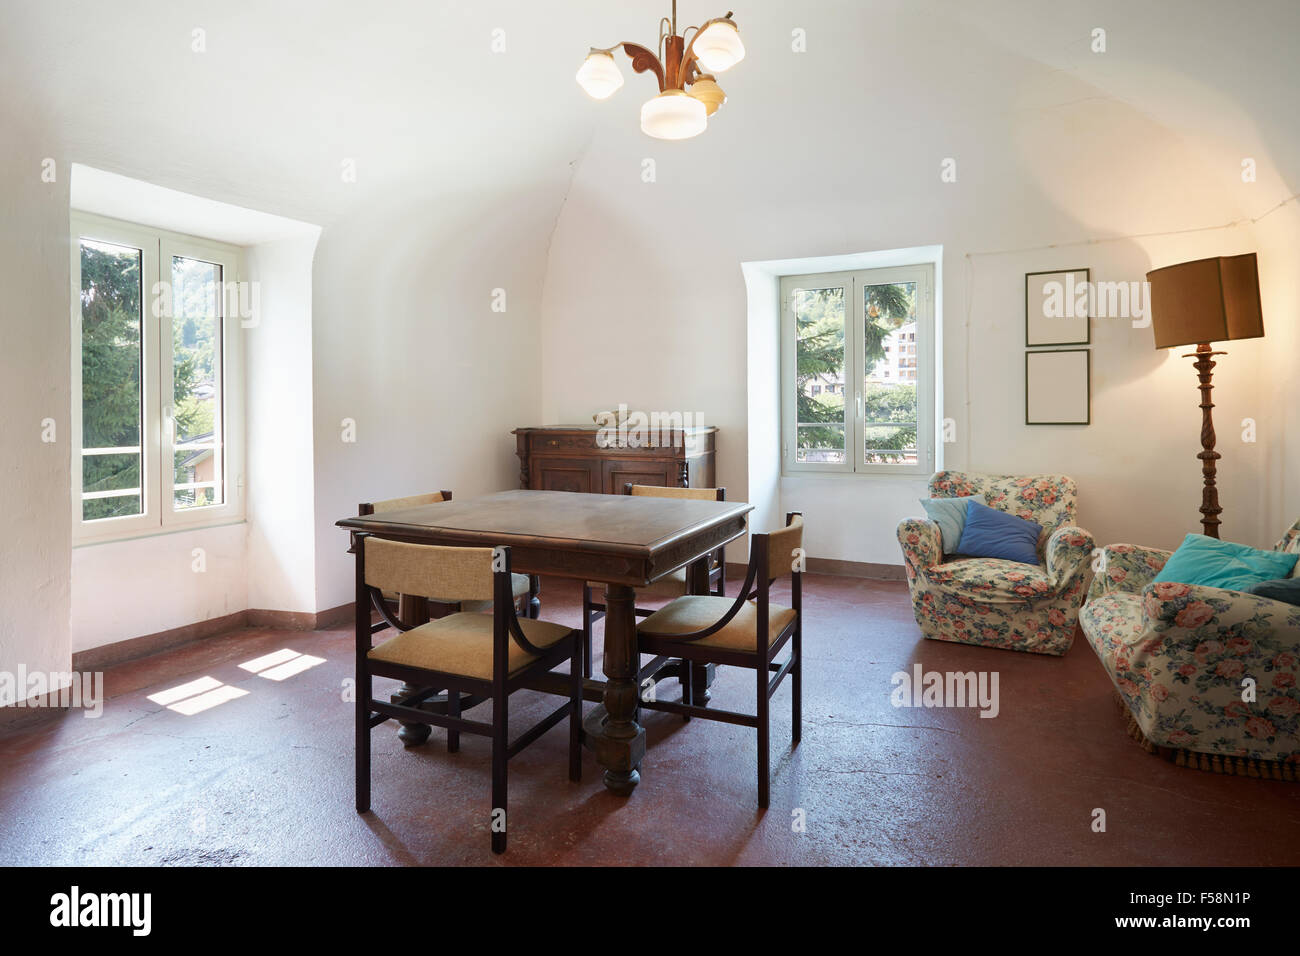 Living room, old interior with table and four chairs Stock Photo ...